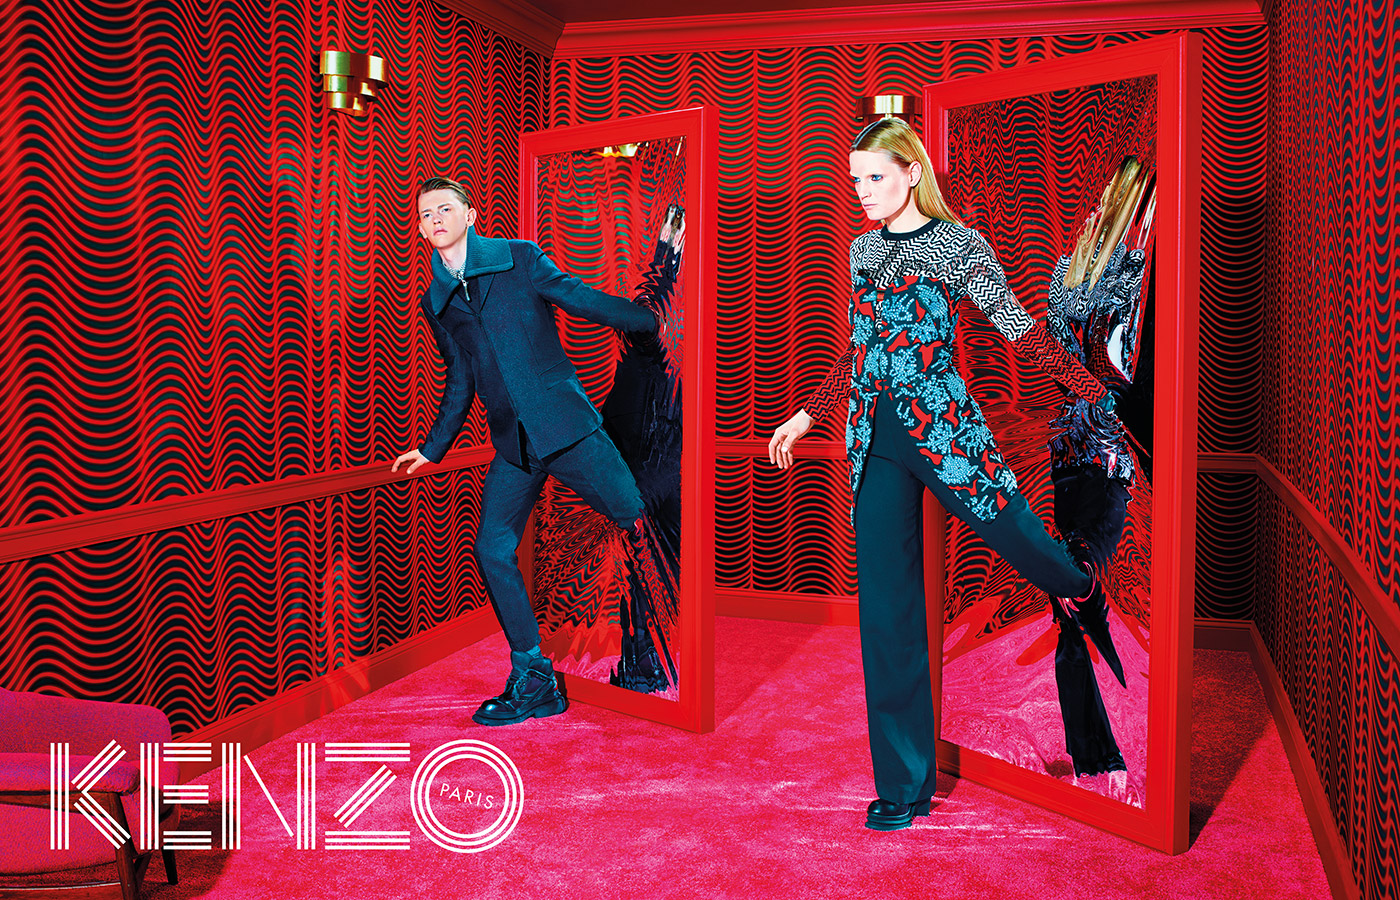 guinevere-van-seenus-robbie-mckinnon-by-pierpaolo-ferrari-for-kenzo-fall-winter-2014-20151